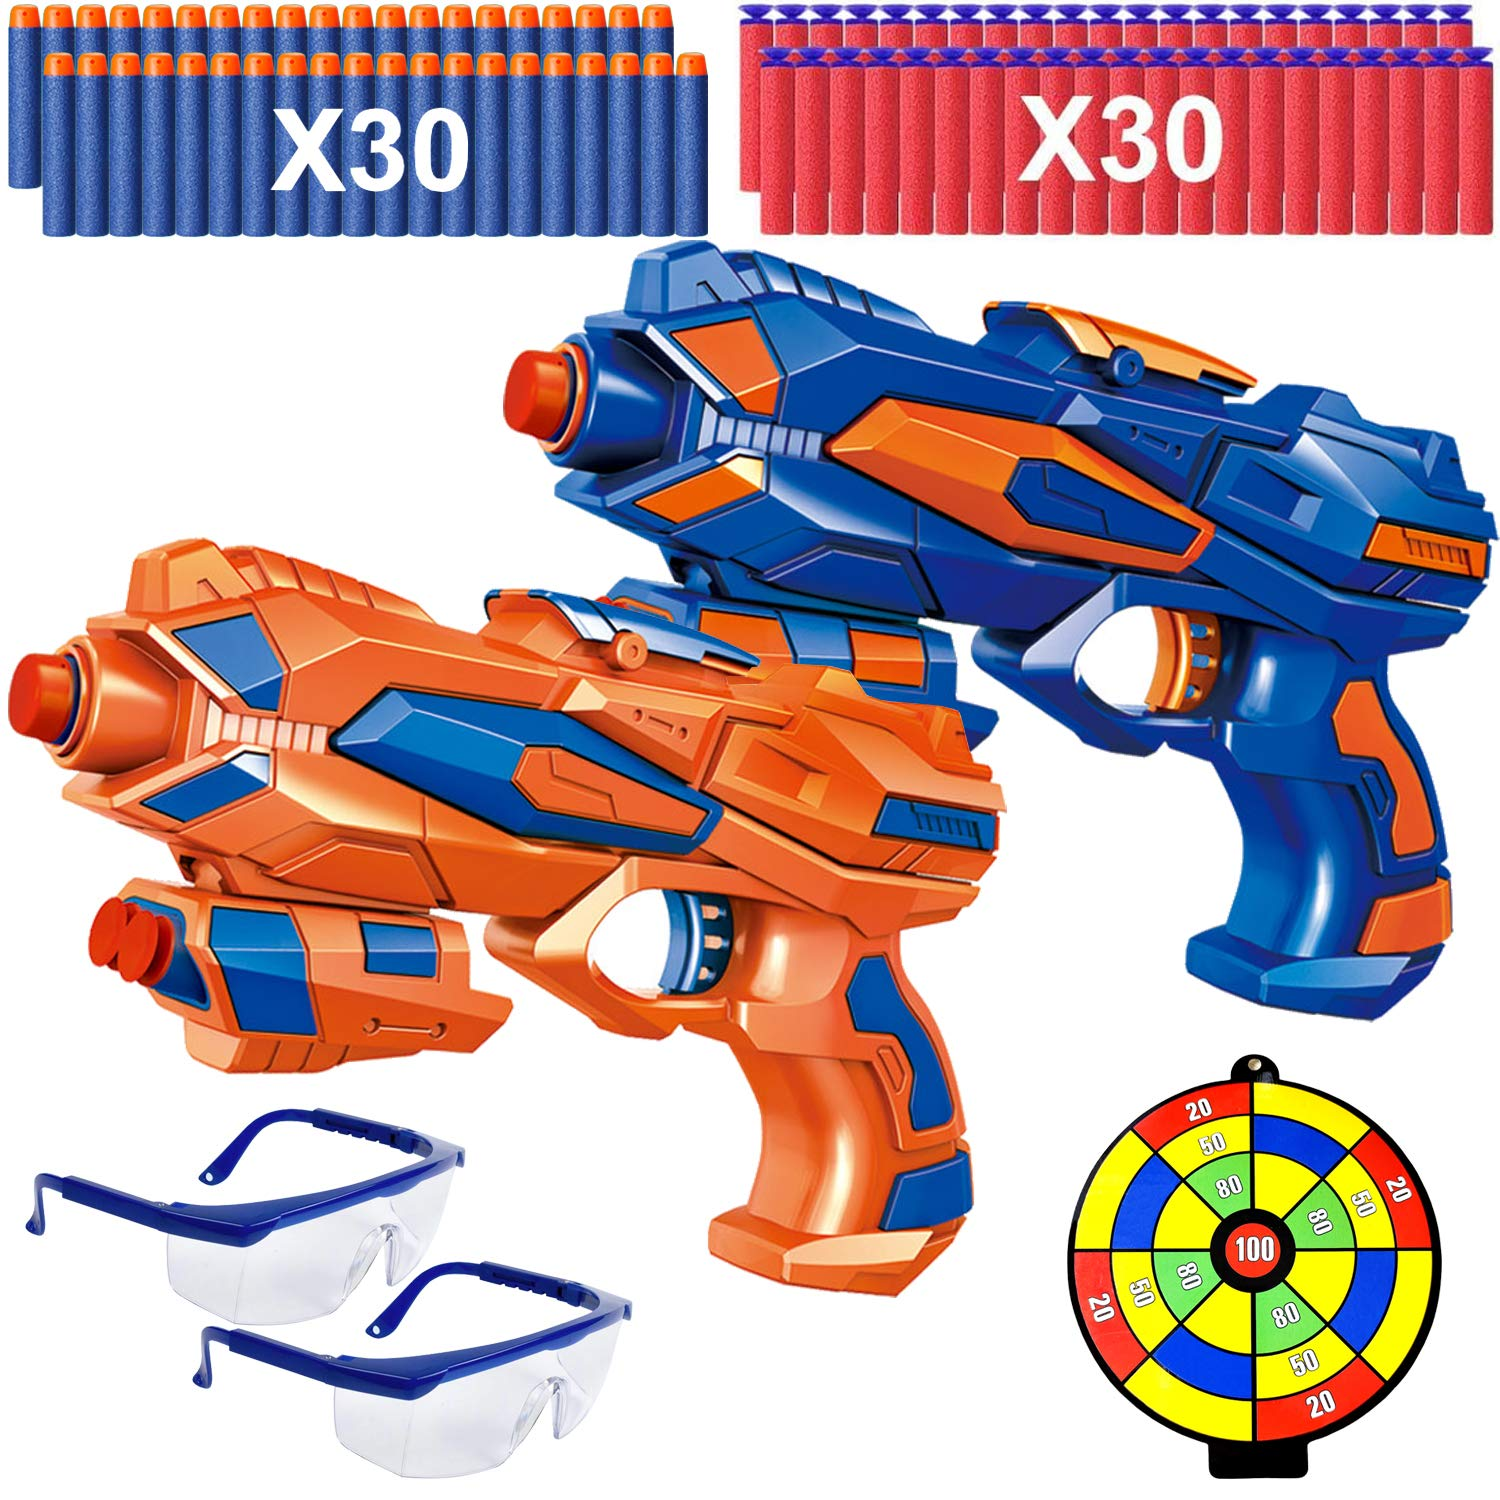 Kids Blaster Guns with 60 Soft Foam Bullets 2 Shoot Targets 2 Pack Toy Guns for Boys Best Xmas Birthday Gifts for Age 3-10 Year Old 2 Darts Wrist Band and 2 Safety Goggles Children Toy Pistol